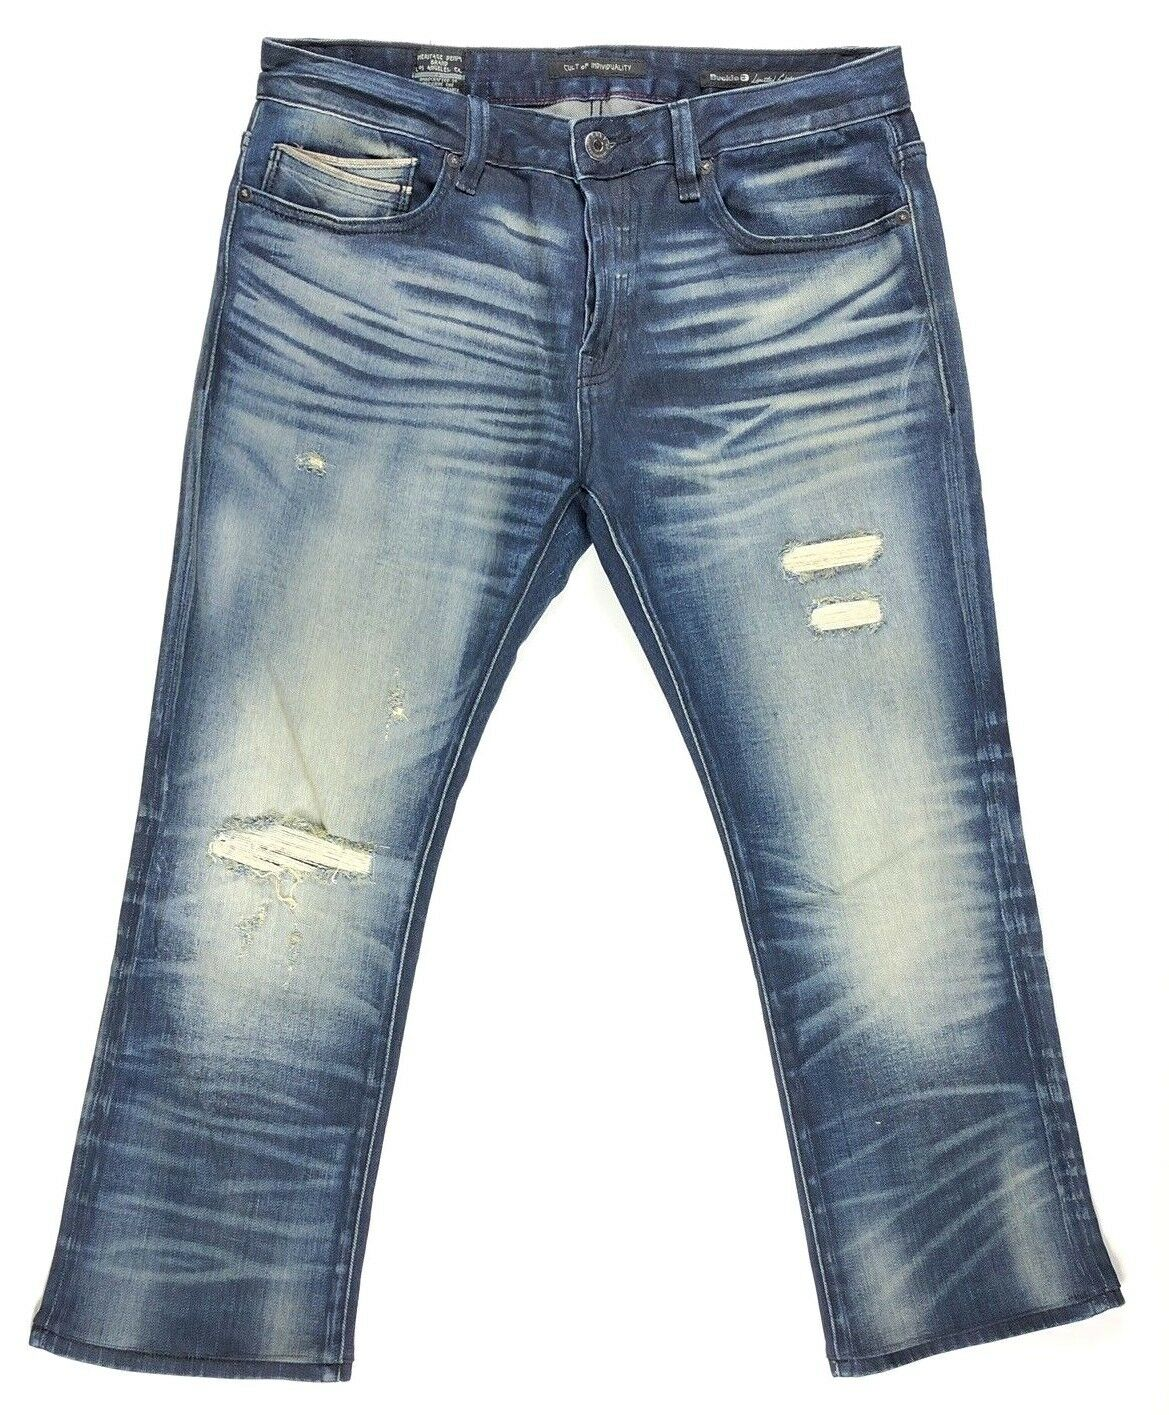 Cult of Individuality Stretch Jean Rebel Straight Fit Men Size 34x28 Dark Wash